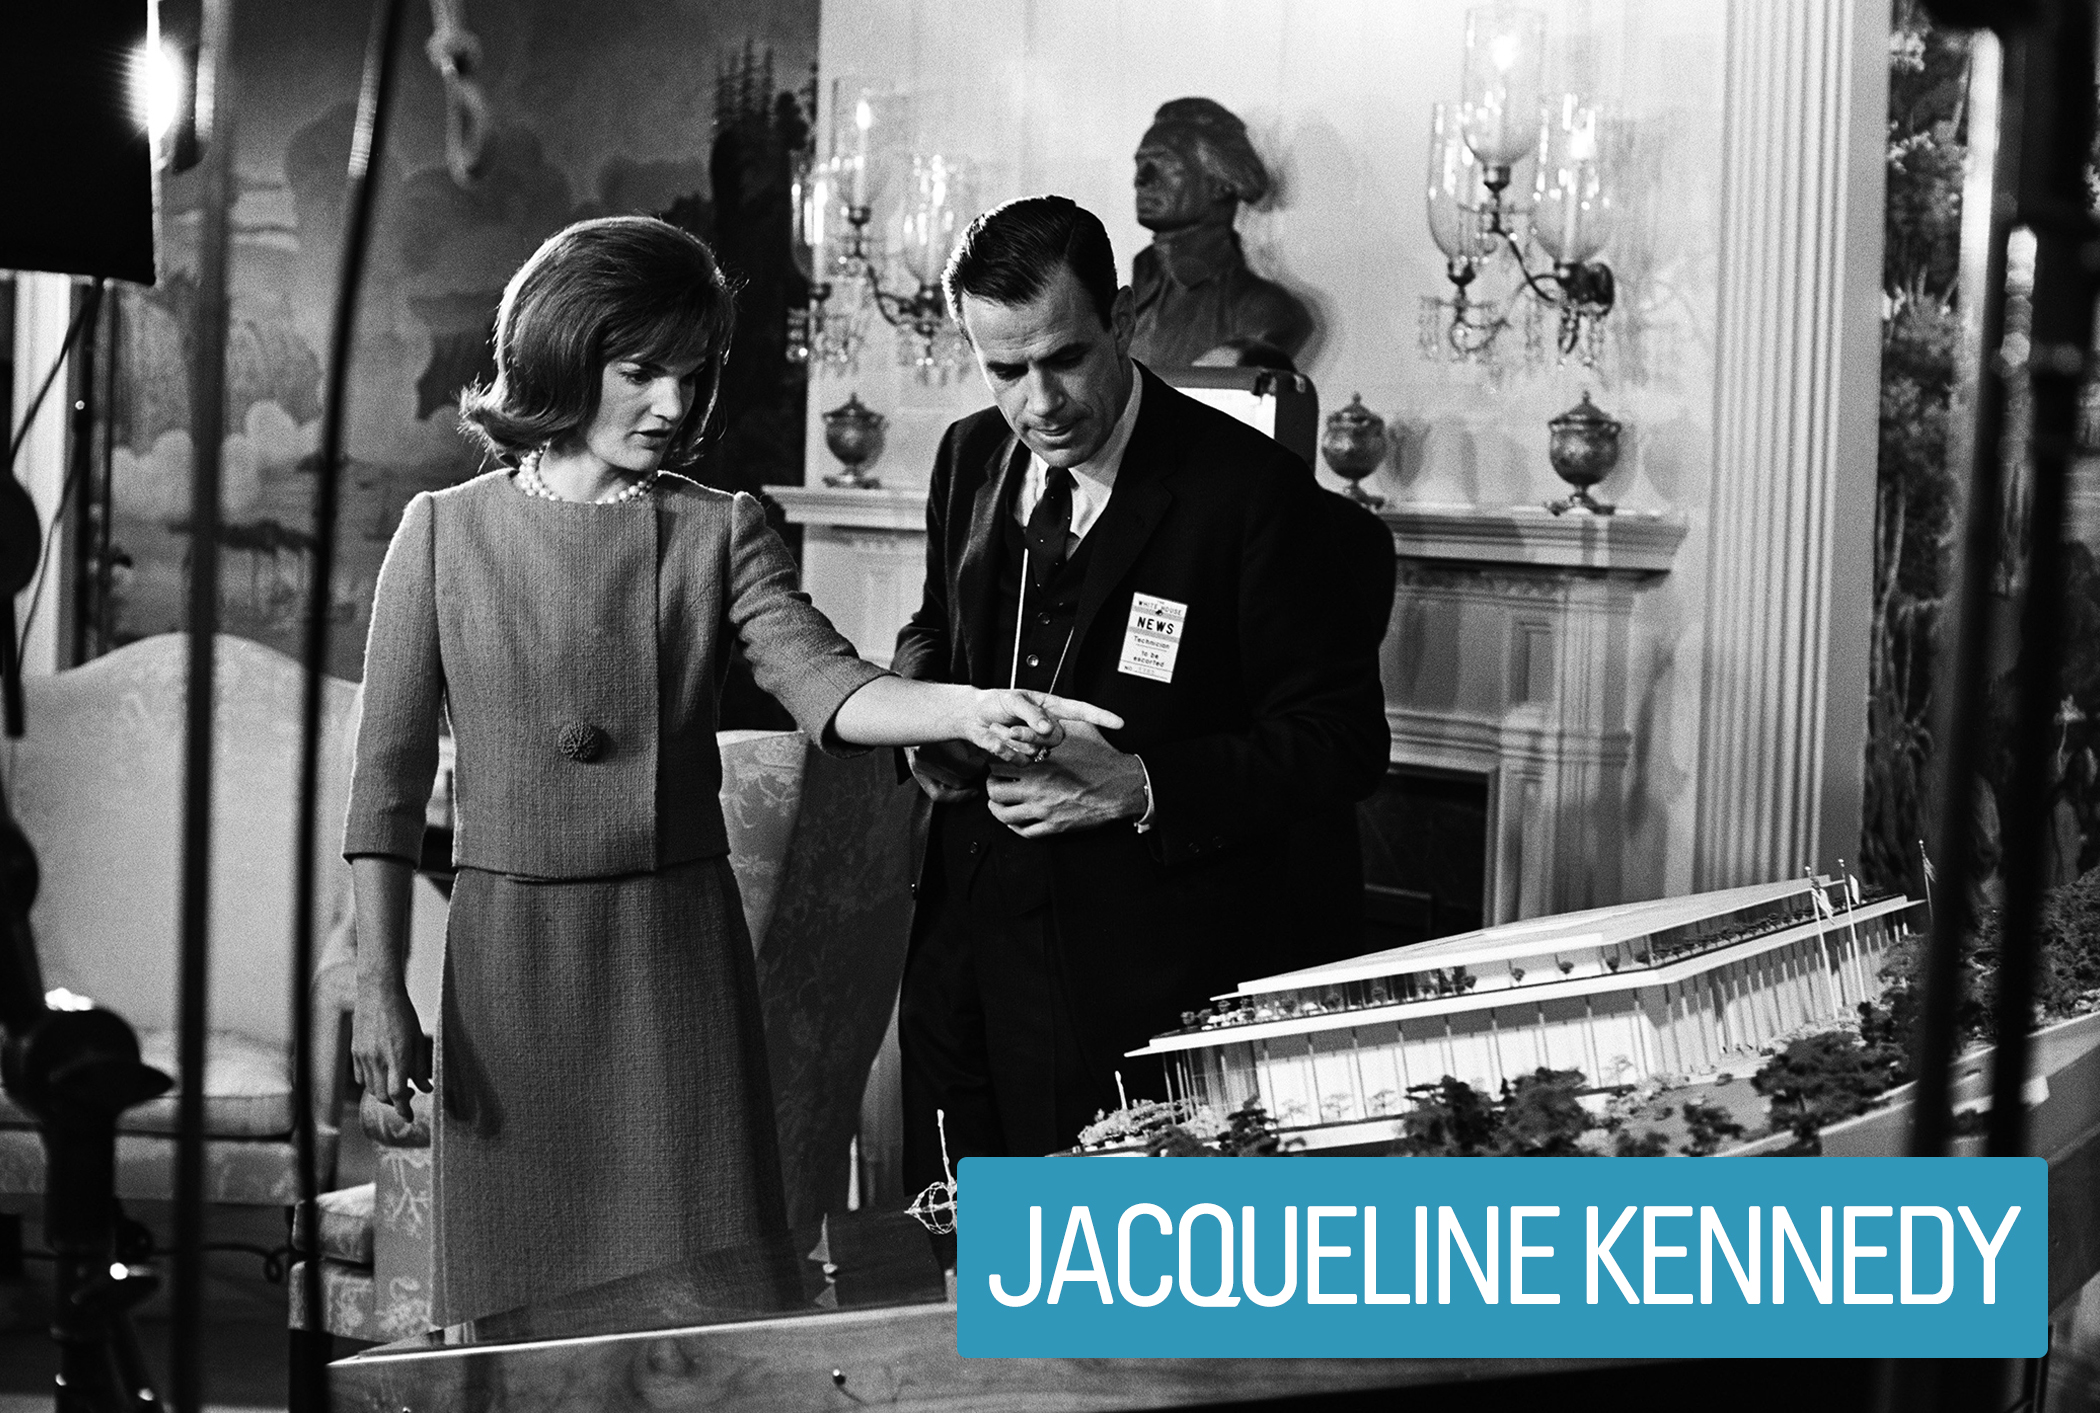 After restoring and redecorating The White House, Jacqueline Kennedy hosted showcases of art, music and dance performances there—even securing The Mona Lisa on loan from France.                                           She was ultimately responsible for the creation of the National Culture Center (shown)—later renamed after JFK—in Washington, D.C.